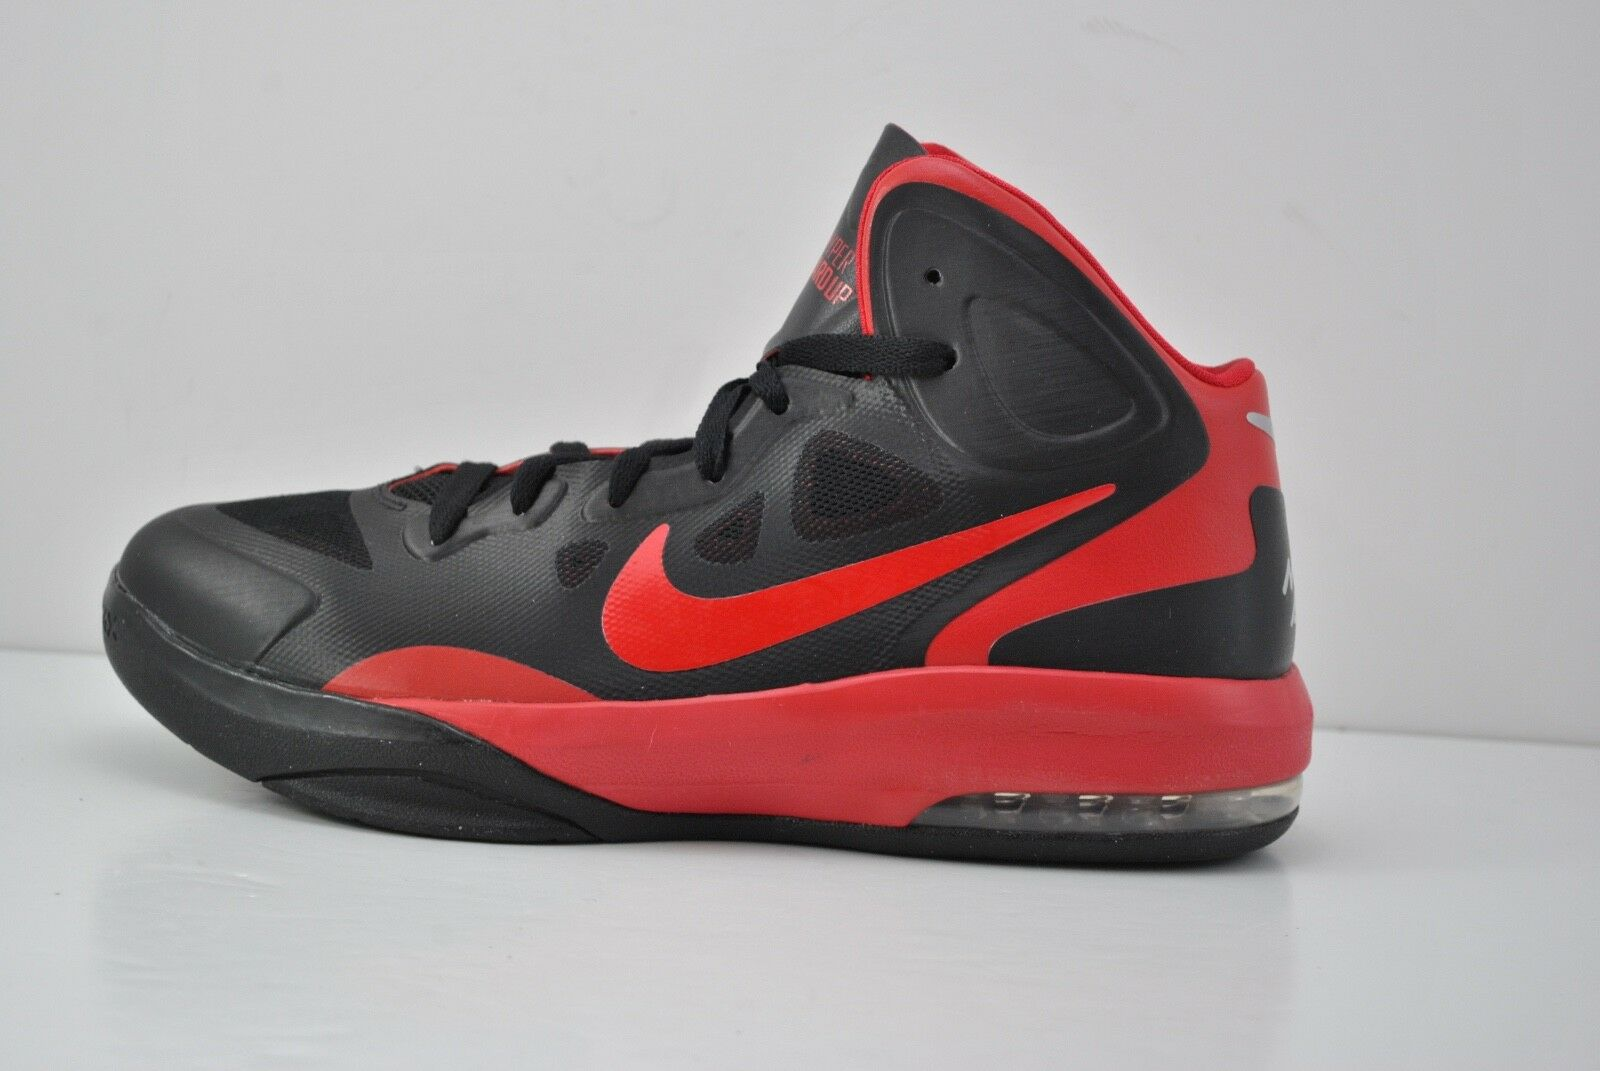 Mens Nike Air Max Hyperguardup Basketball Shoes Size 8.5 Black Red 530954 006